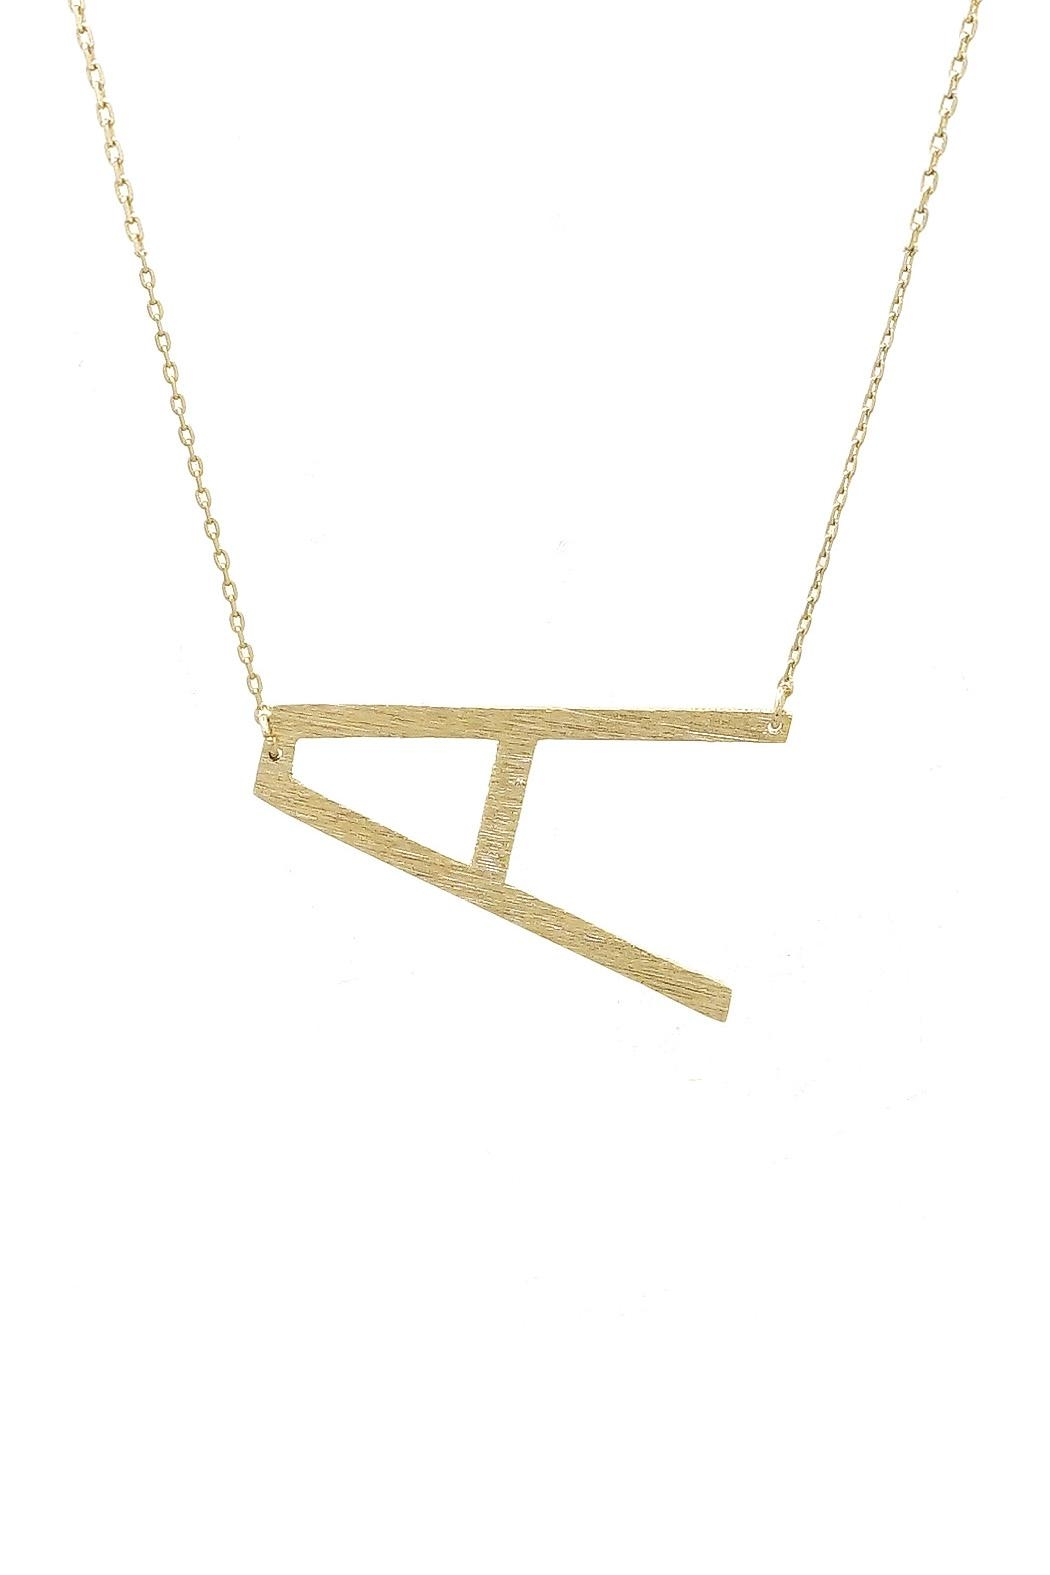 initial necklace sideways gold vermeil letter plated zoom hover to